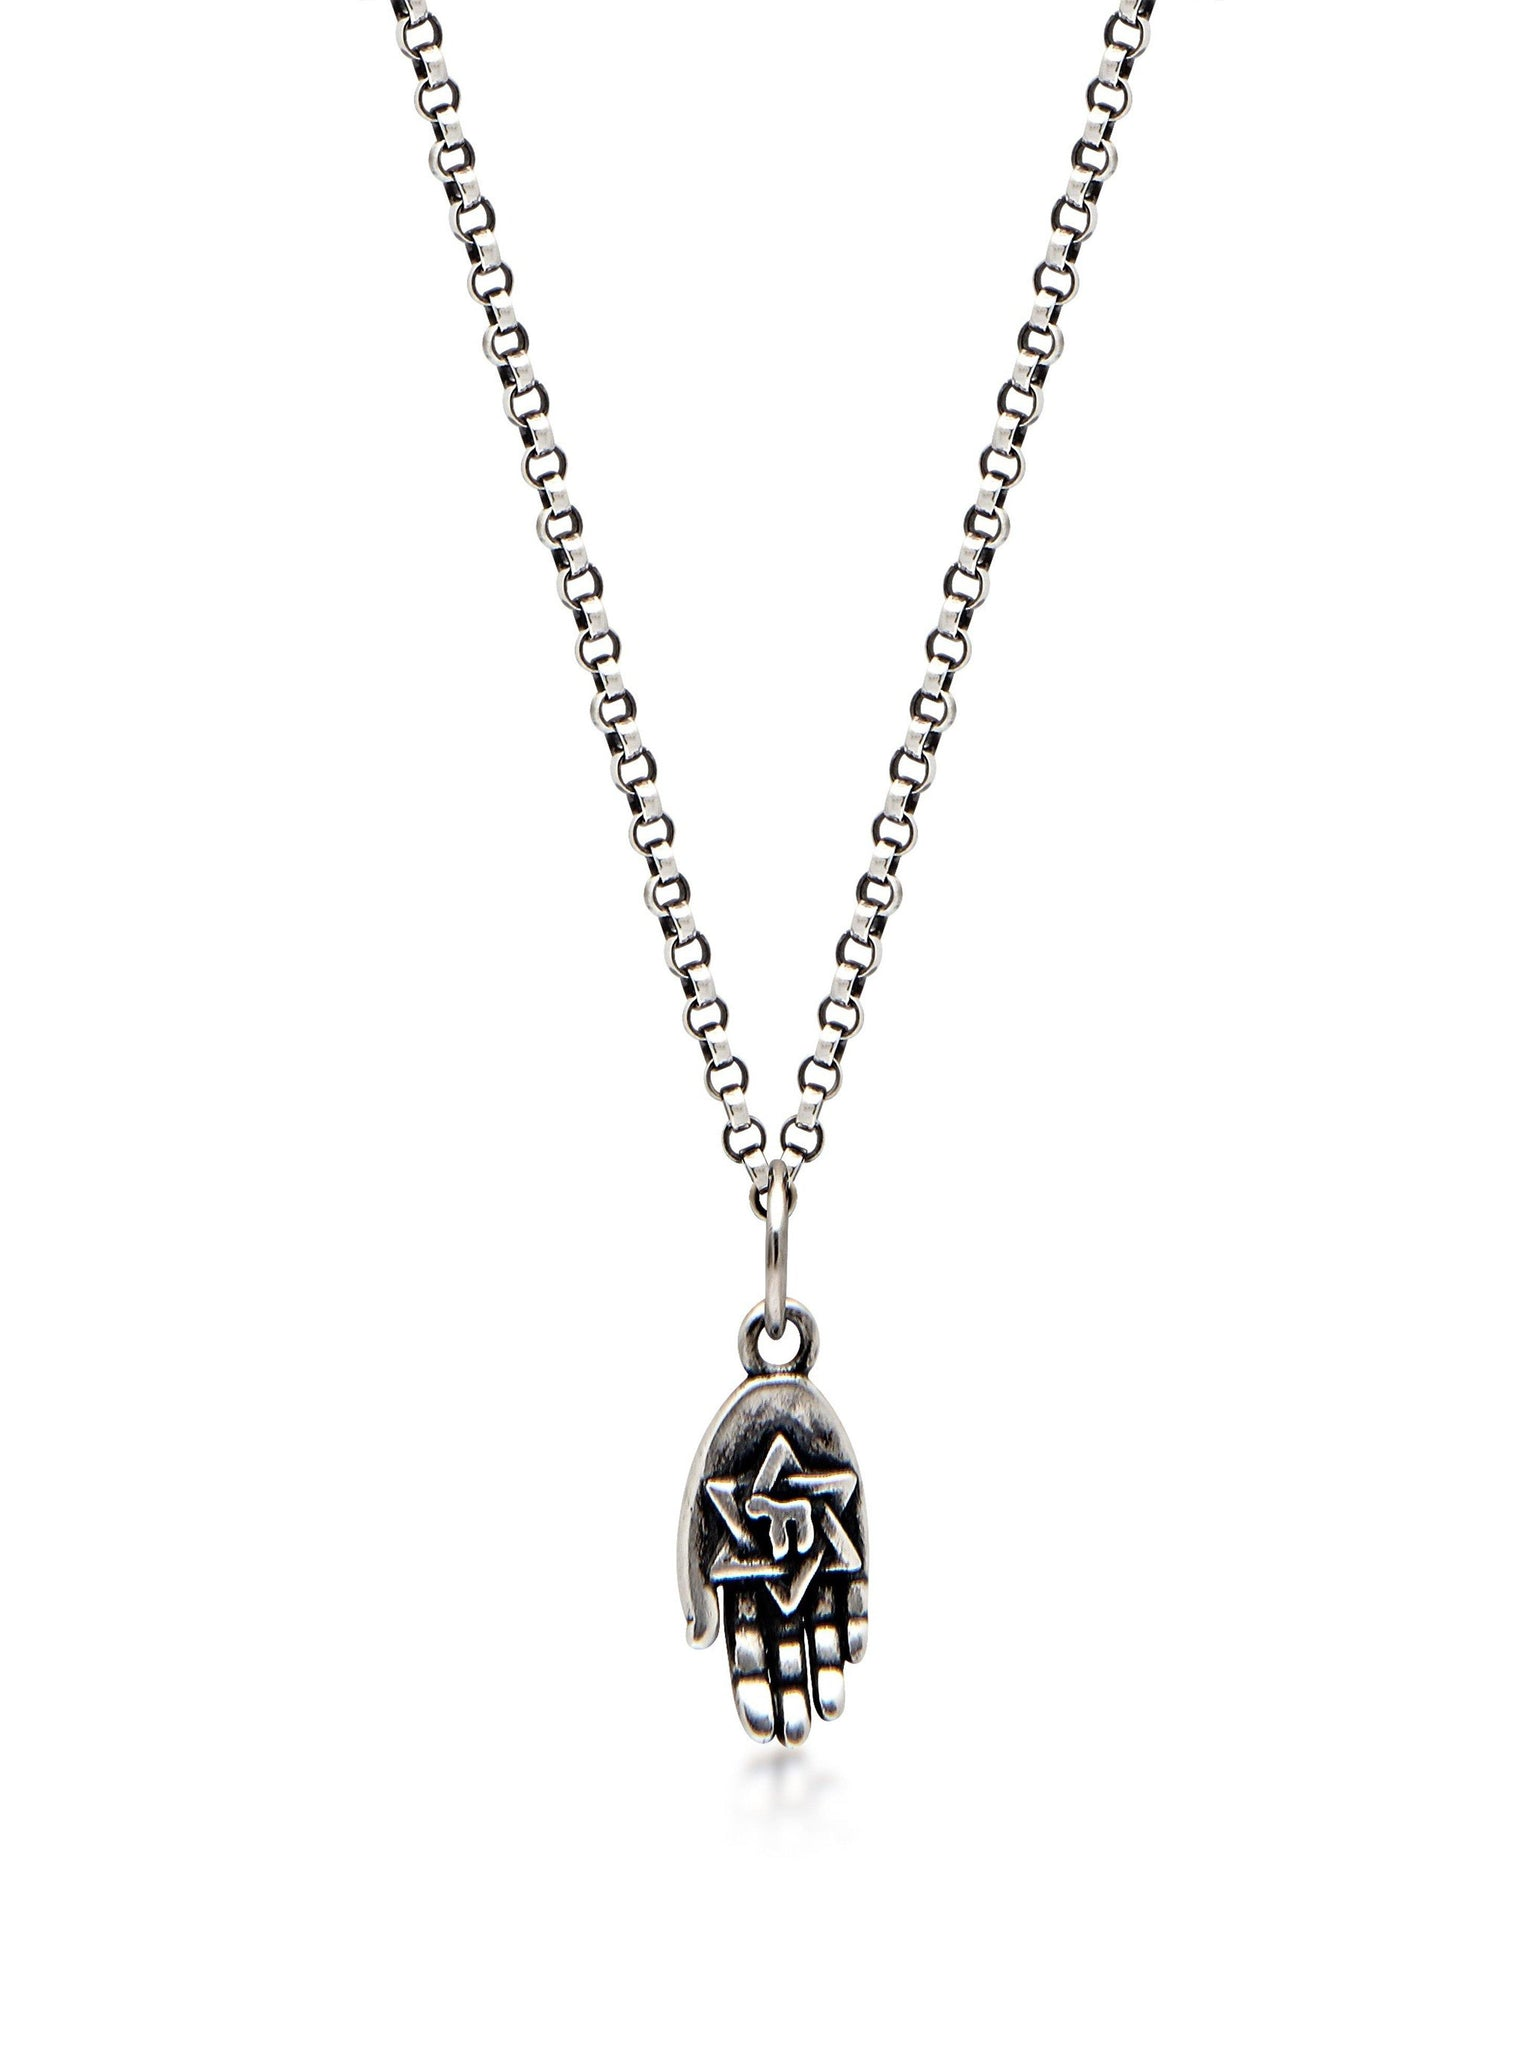 Men's Silver Necklace with Hamsa Hand Pendant - Nialaya Jewelry